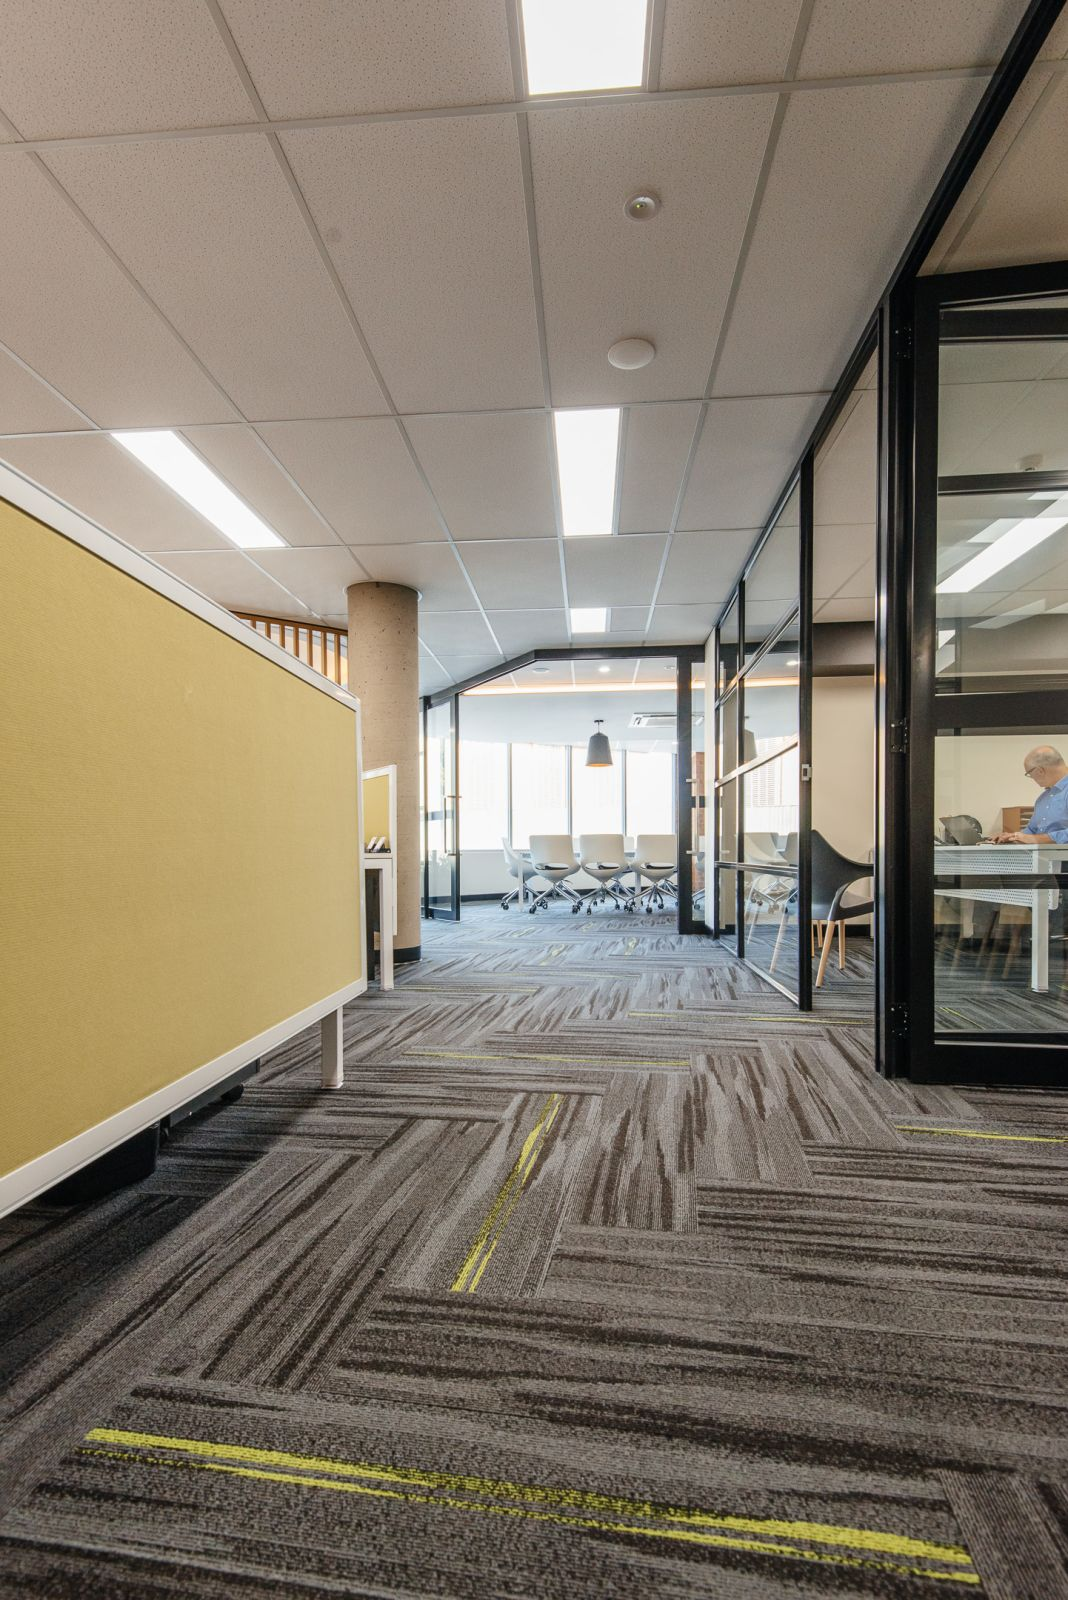 Austral Lights - Charcoal and Yellow in Office Space Hurtsville New South Wales, Walkway View